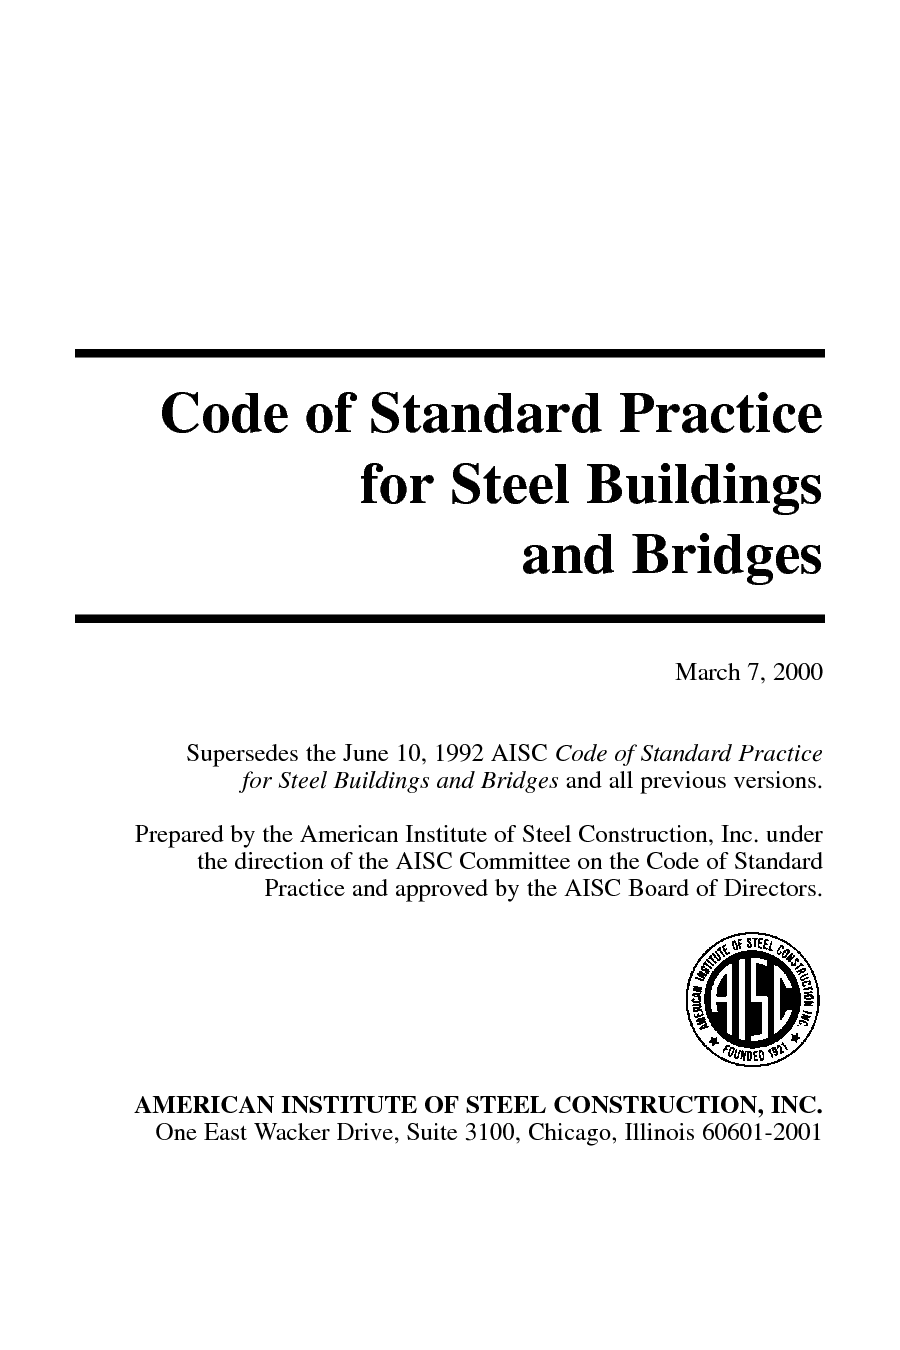 Code of Standard Practice for Steel Buildings and Bridges, 1992